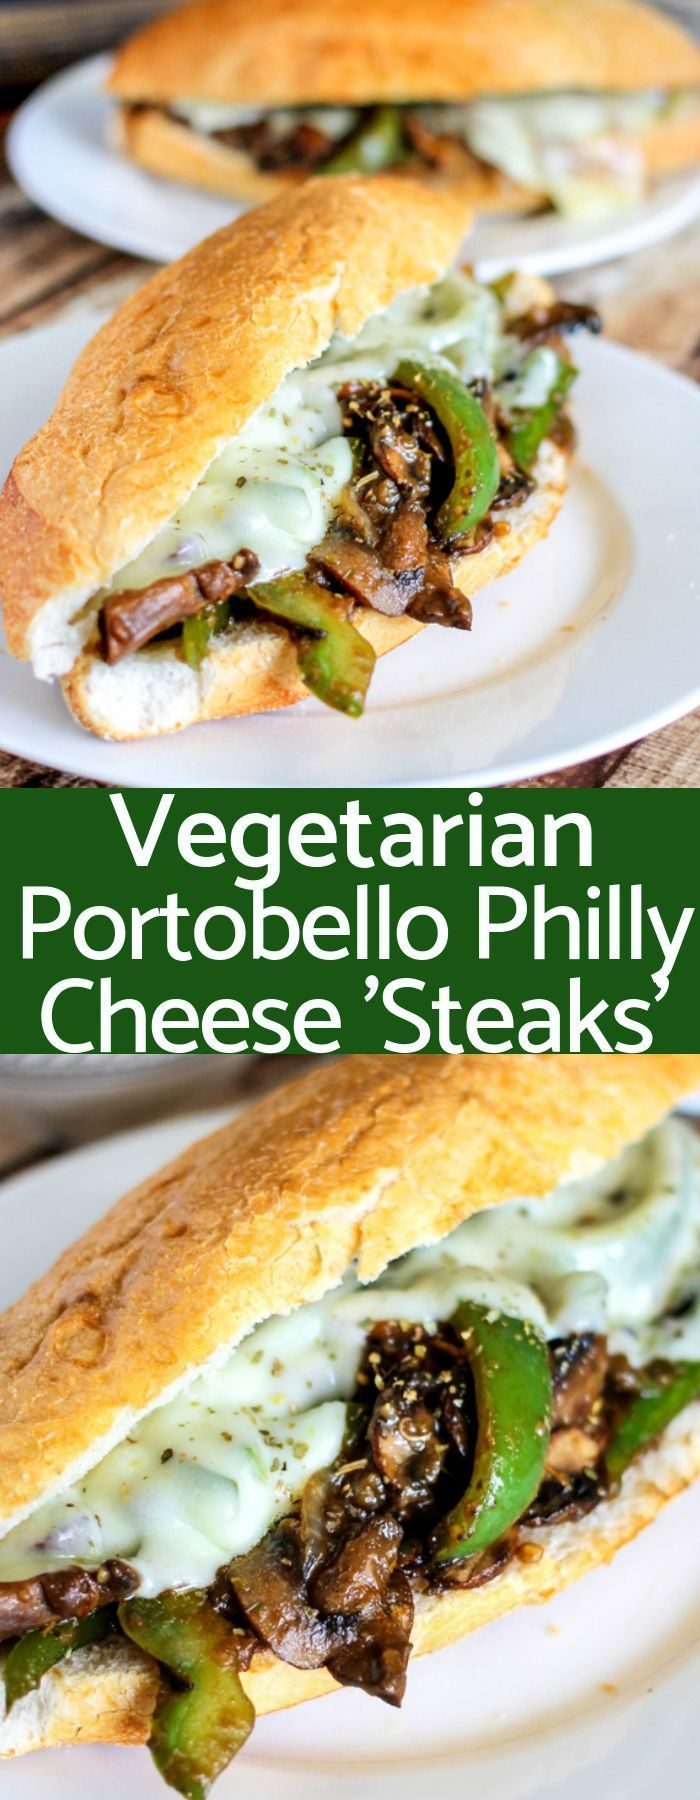 Vegetarian Portobello Philly Cheese Steaks are stuffed with mushrooms peppers